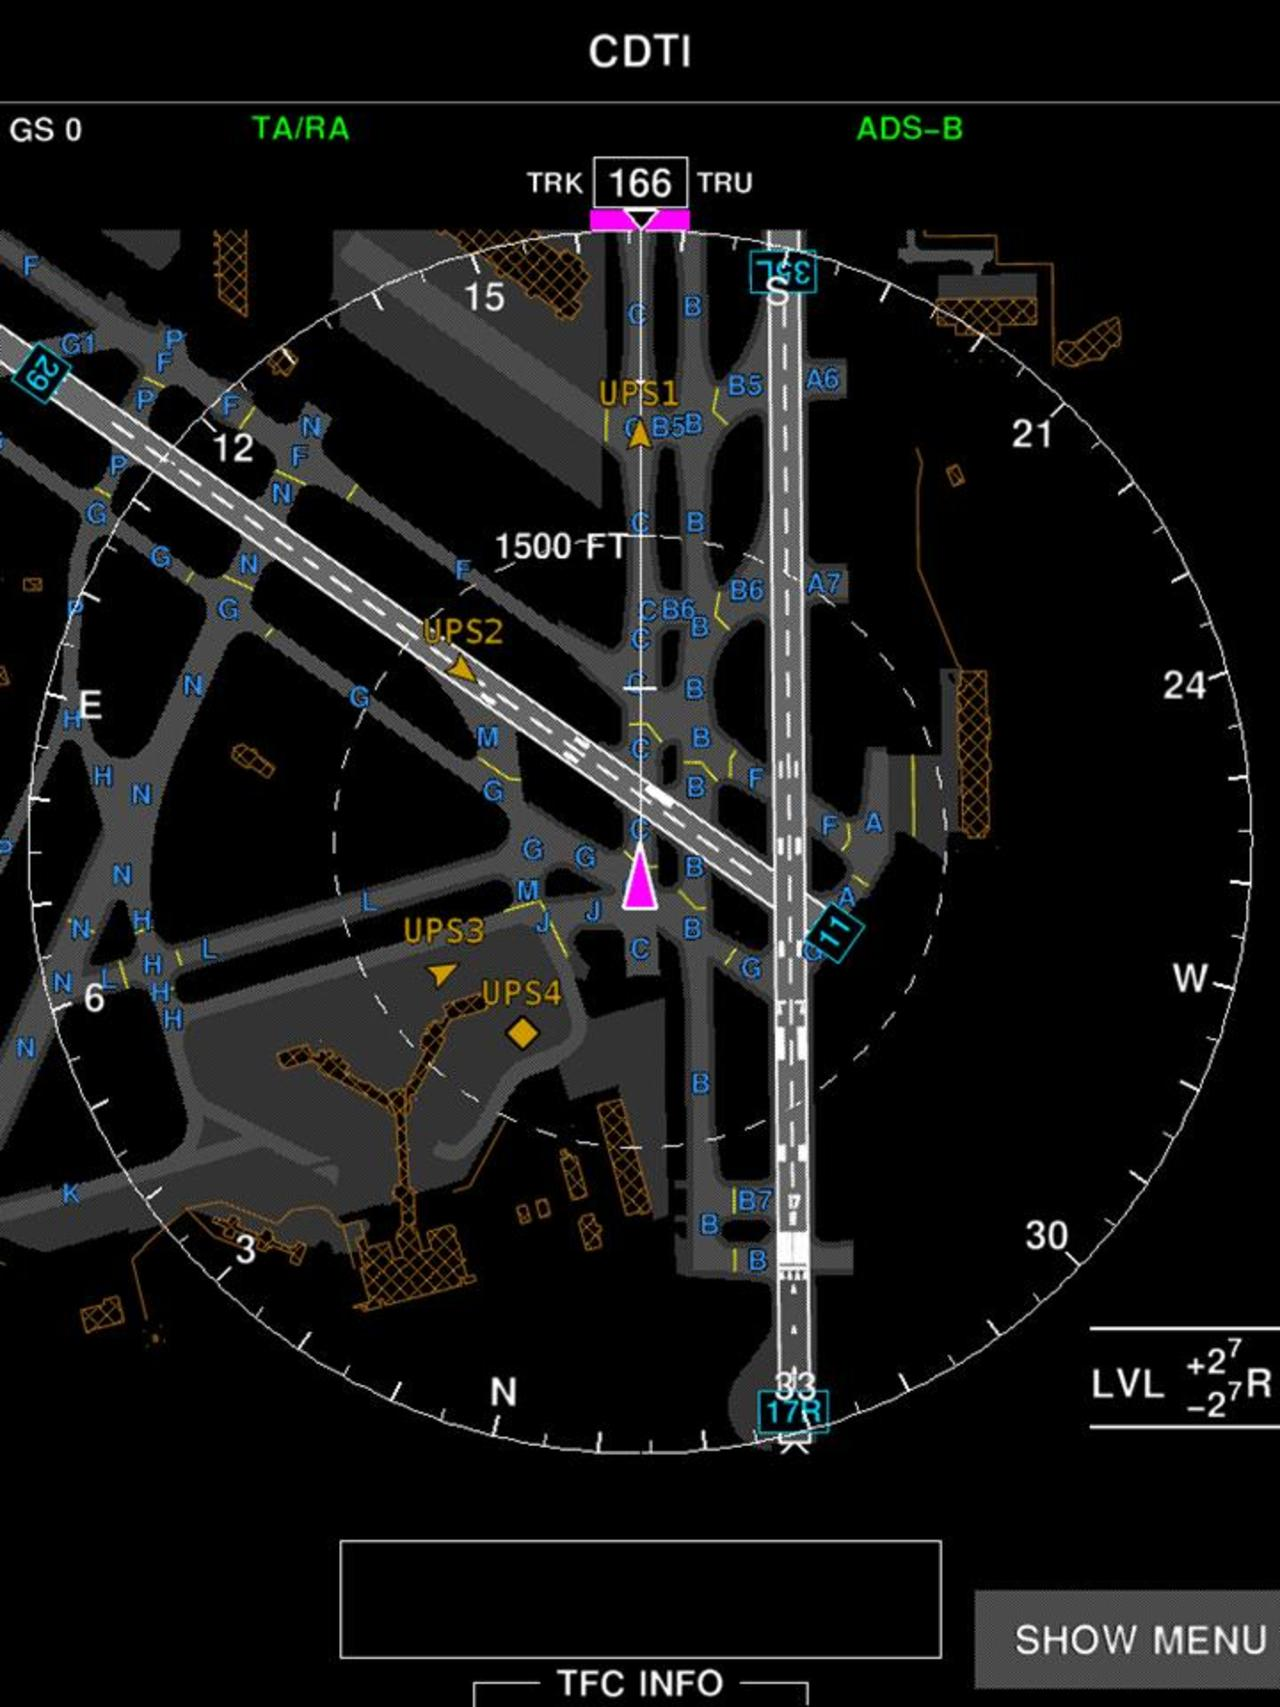 August September 2017 Inside The Next Generation Of Business Jet Gulfstream Wiring Diagrams Acss Saferoute Applications Can Be Displayed On Multifunctional Displaysphoto Courtesy